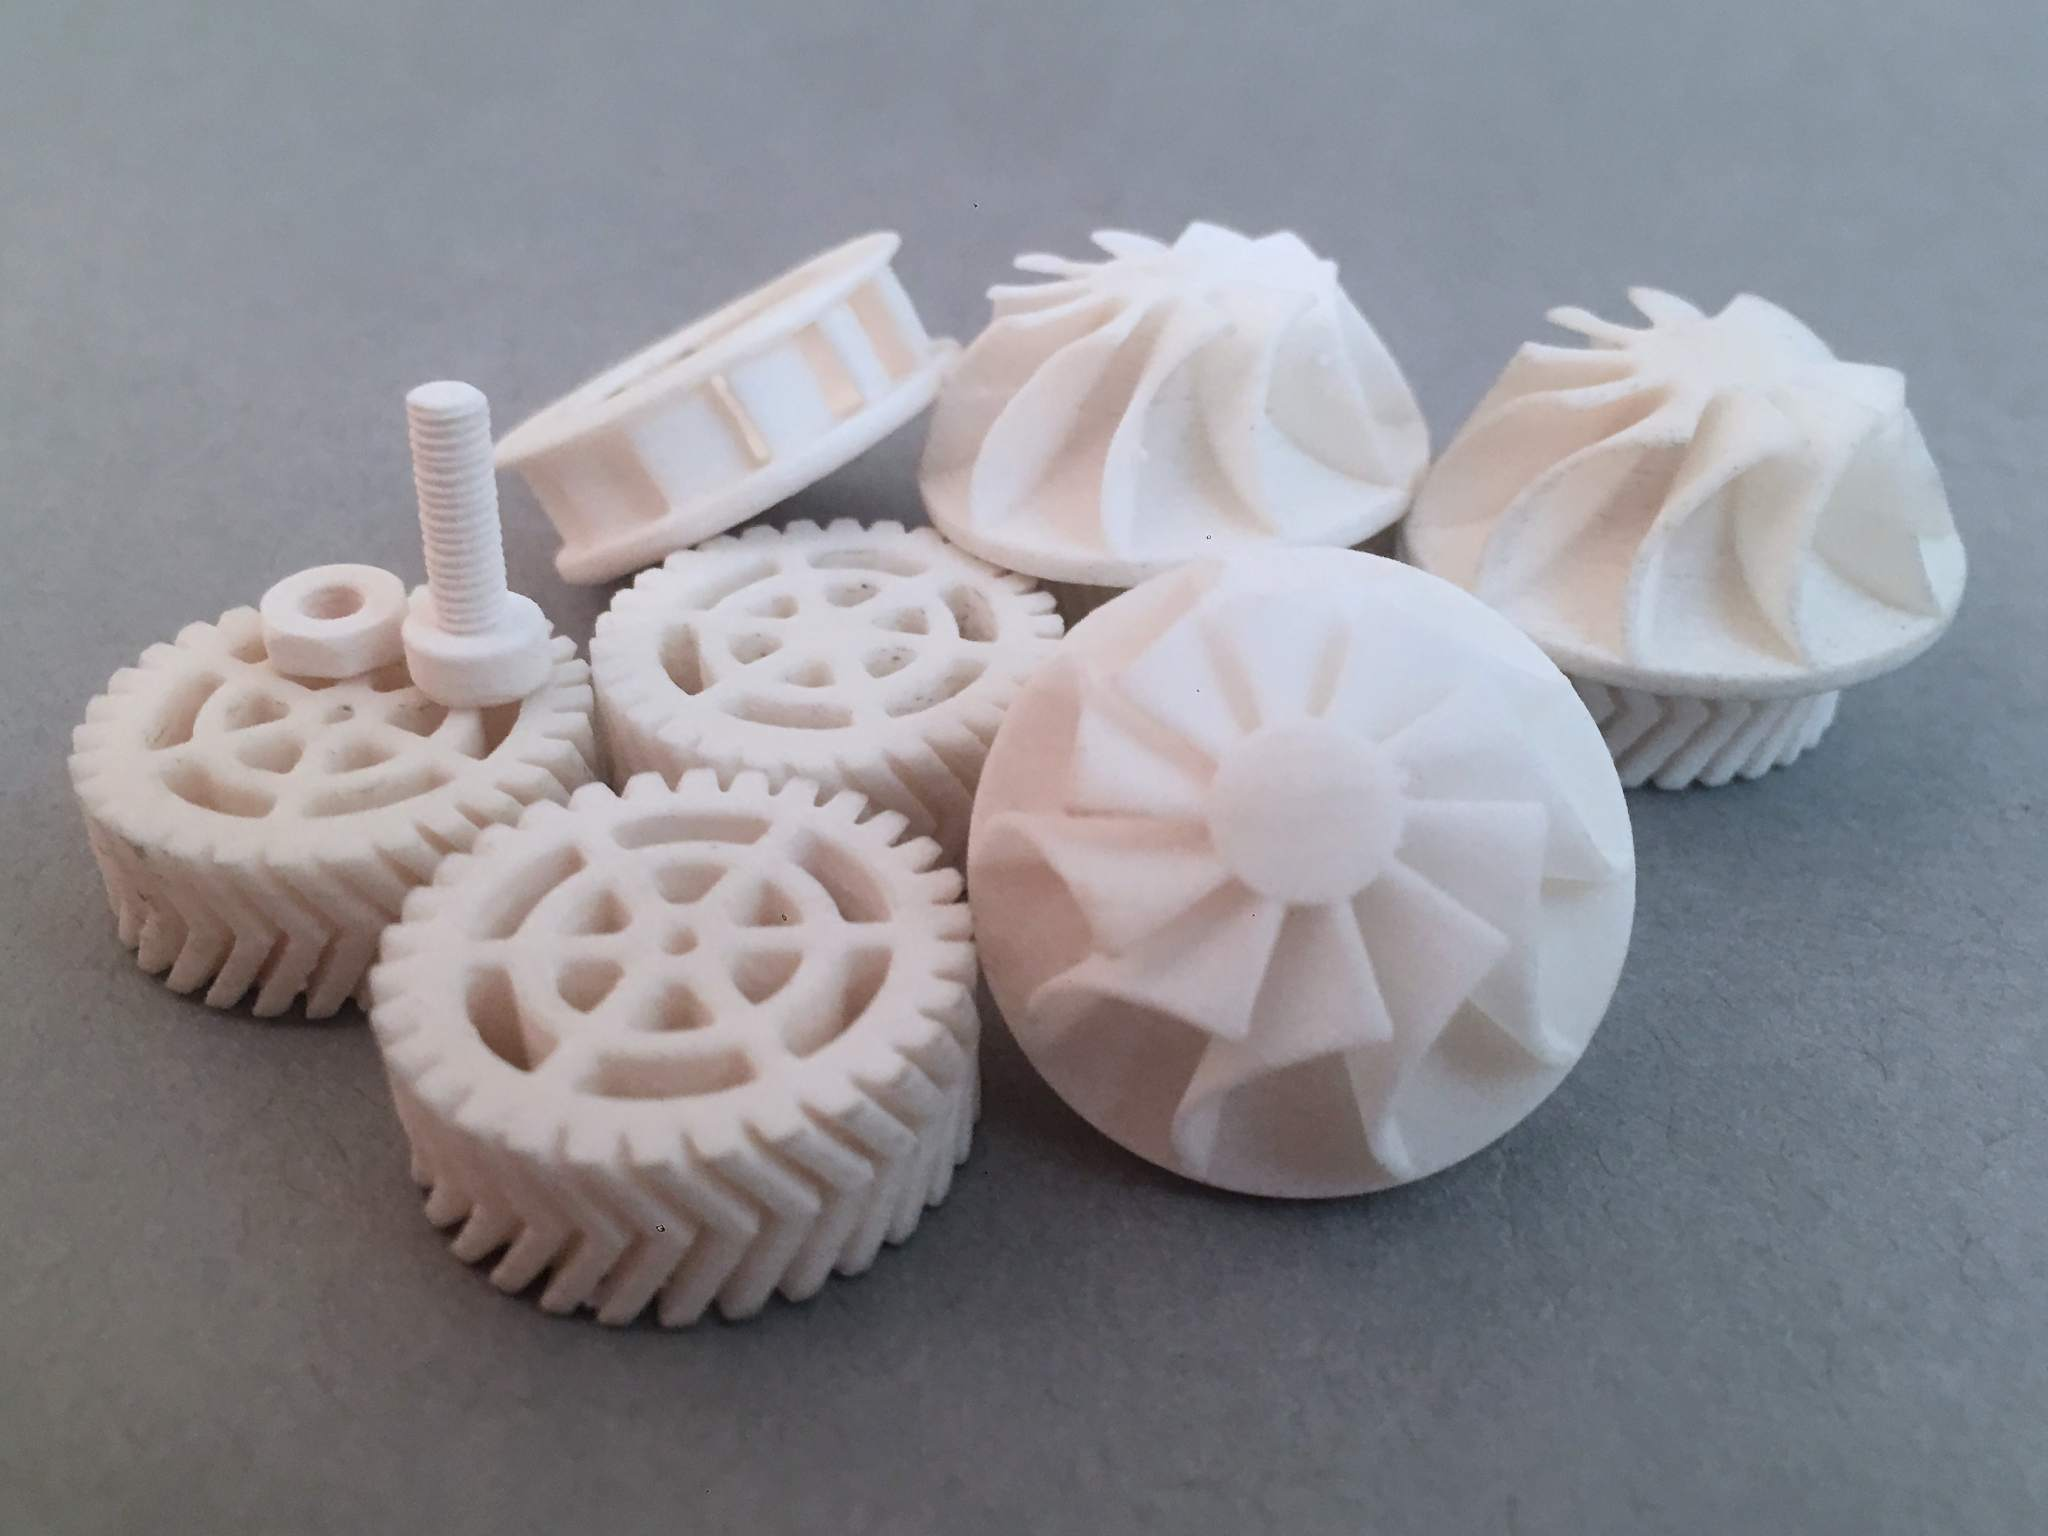 3D printed parts using Vitrolite. Photo via Tethon3D.